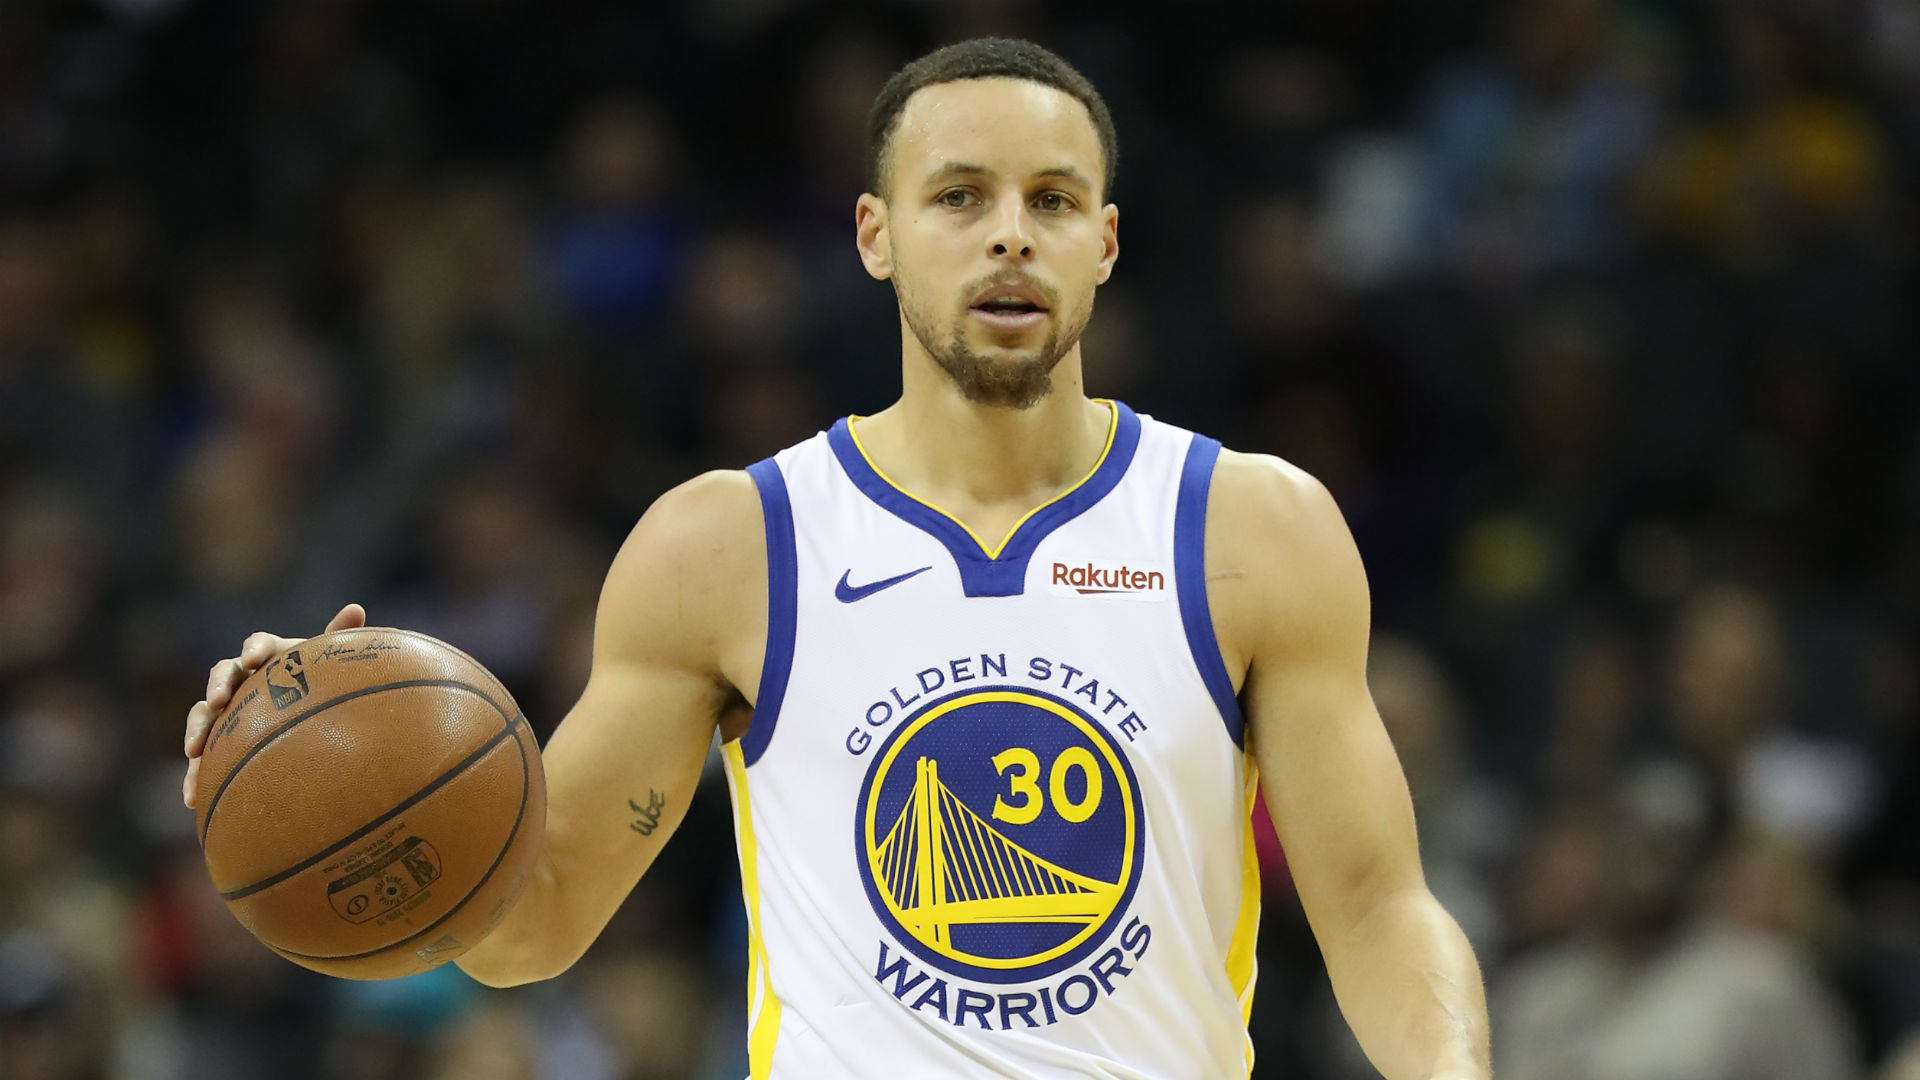 Warriors star Stephen Curry struggles in front of hometown ...